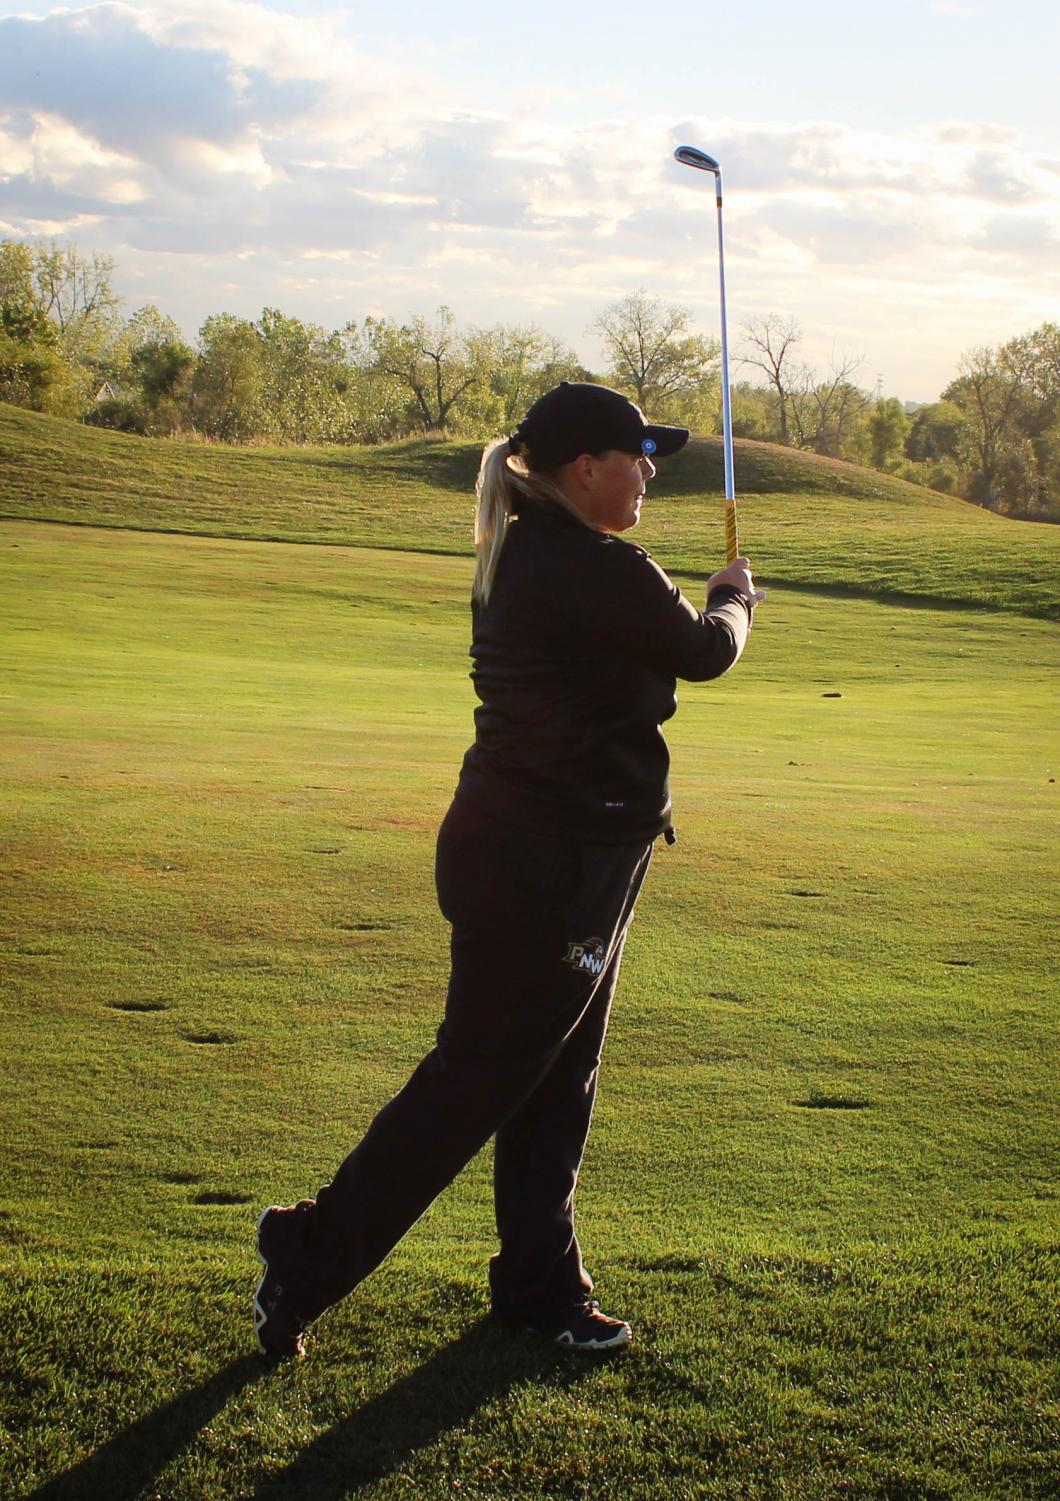 Lauren Bailey, sophomore business major, set a new school record with a score of 78 earlier this season.